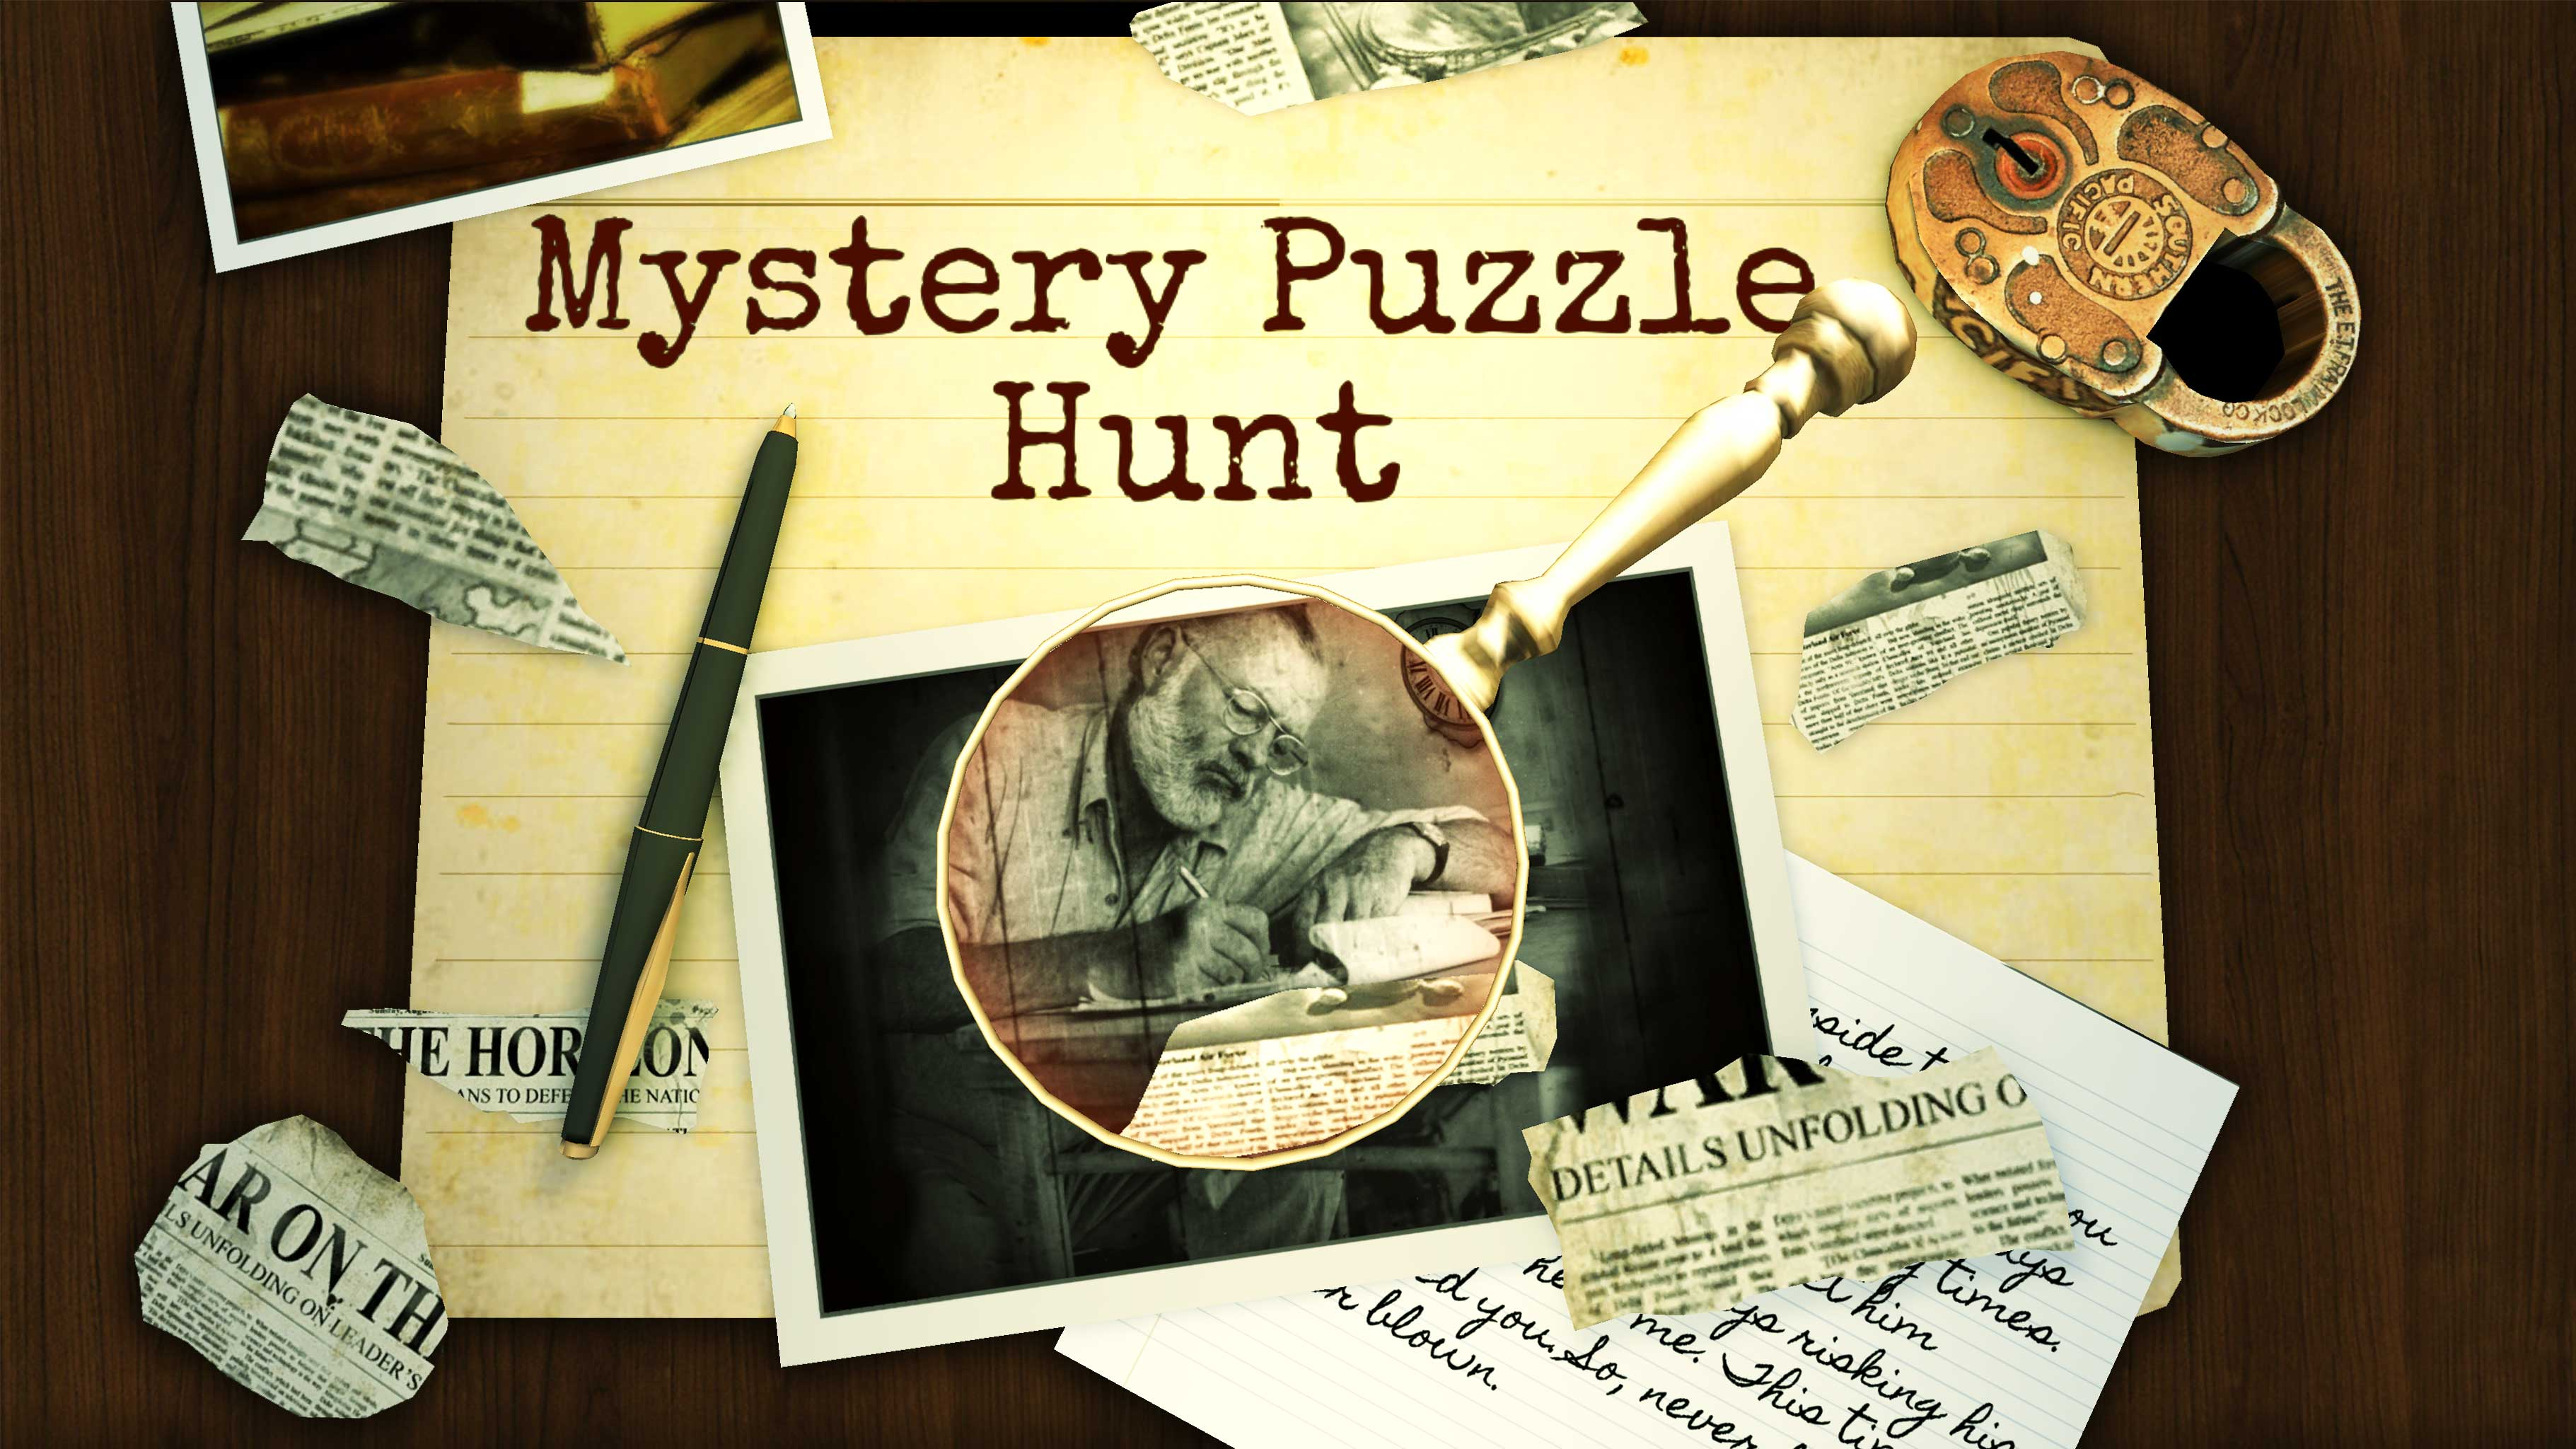 Mystery Puzzle Hunt : A Realistic Riddle Game Windows, Mac, Linux, Web, iPhone, iPad, Android